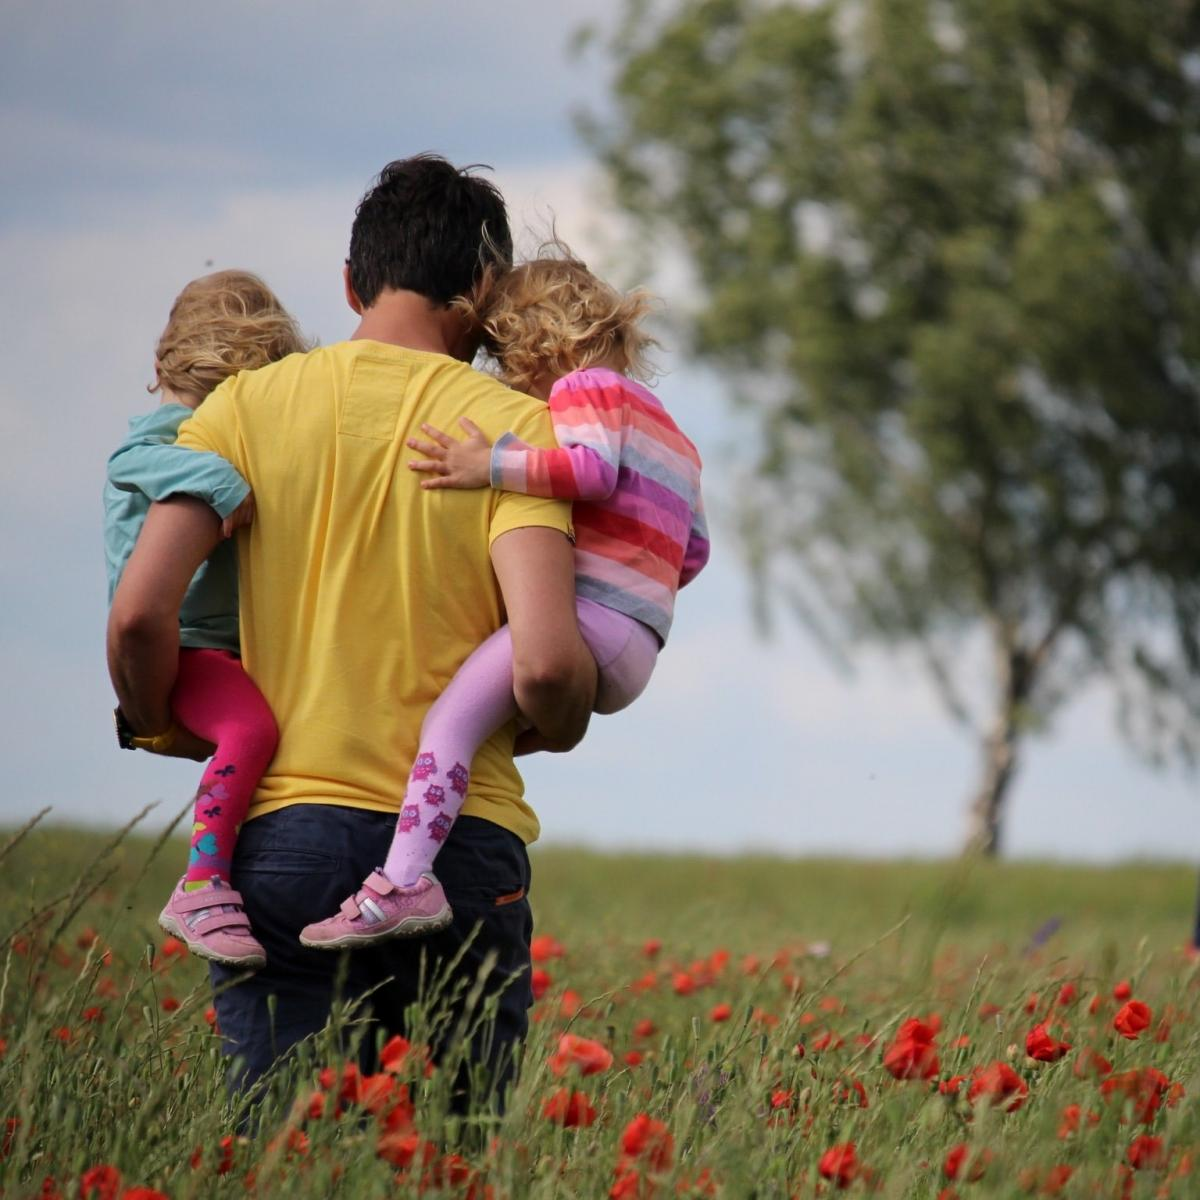 5 Thoughtful Ways to Make His Father's Day